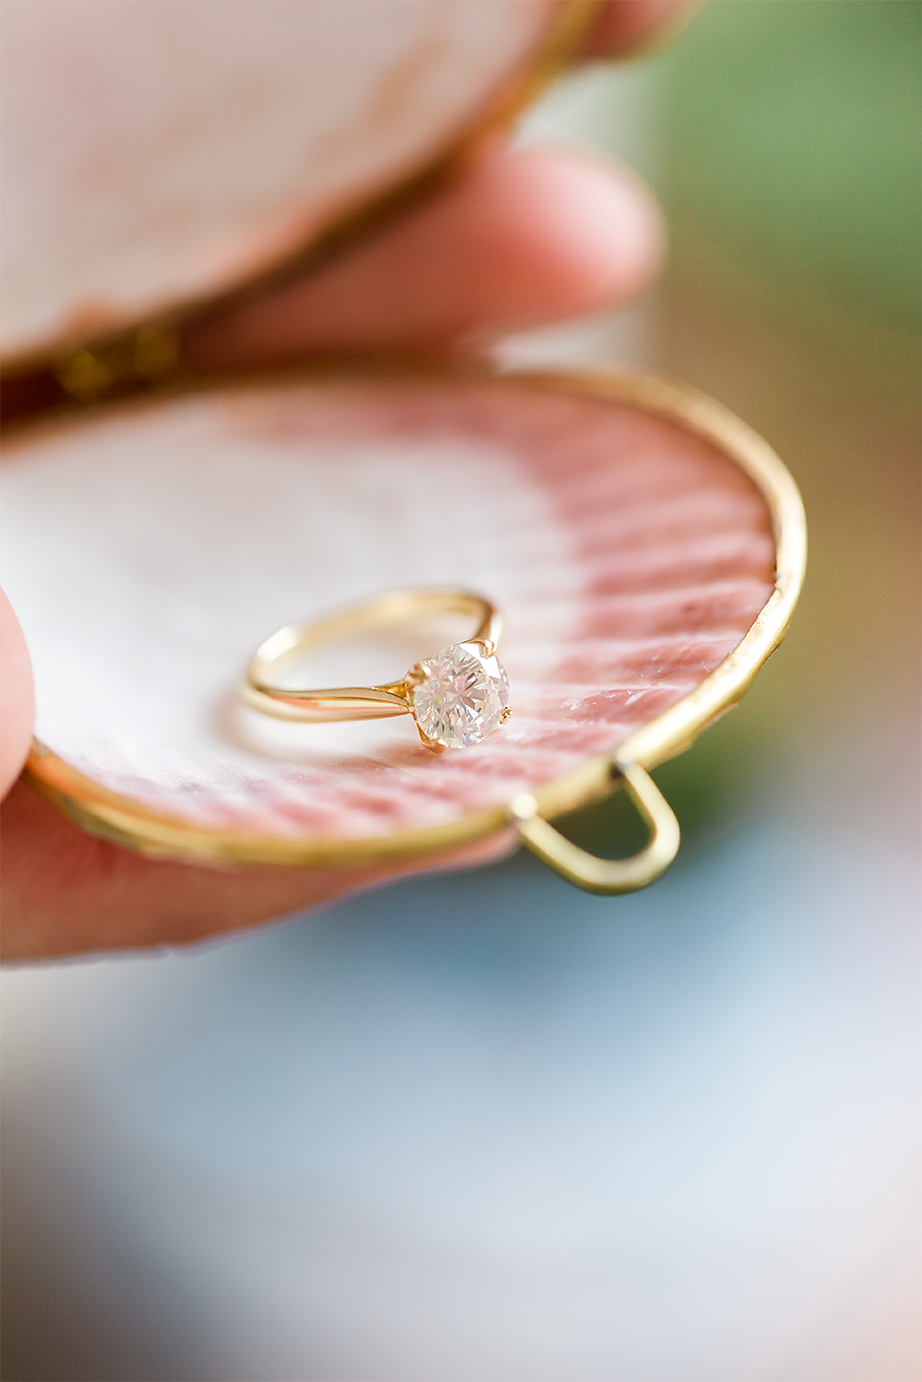 ring in a seashell for the proposal